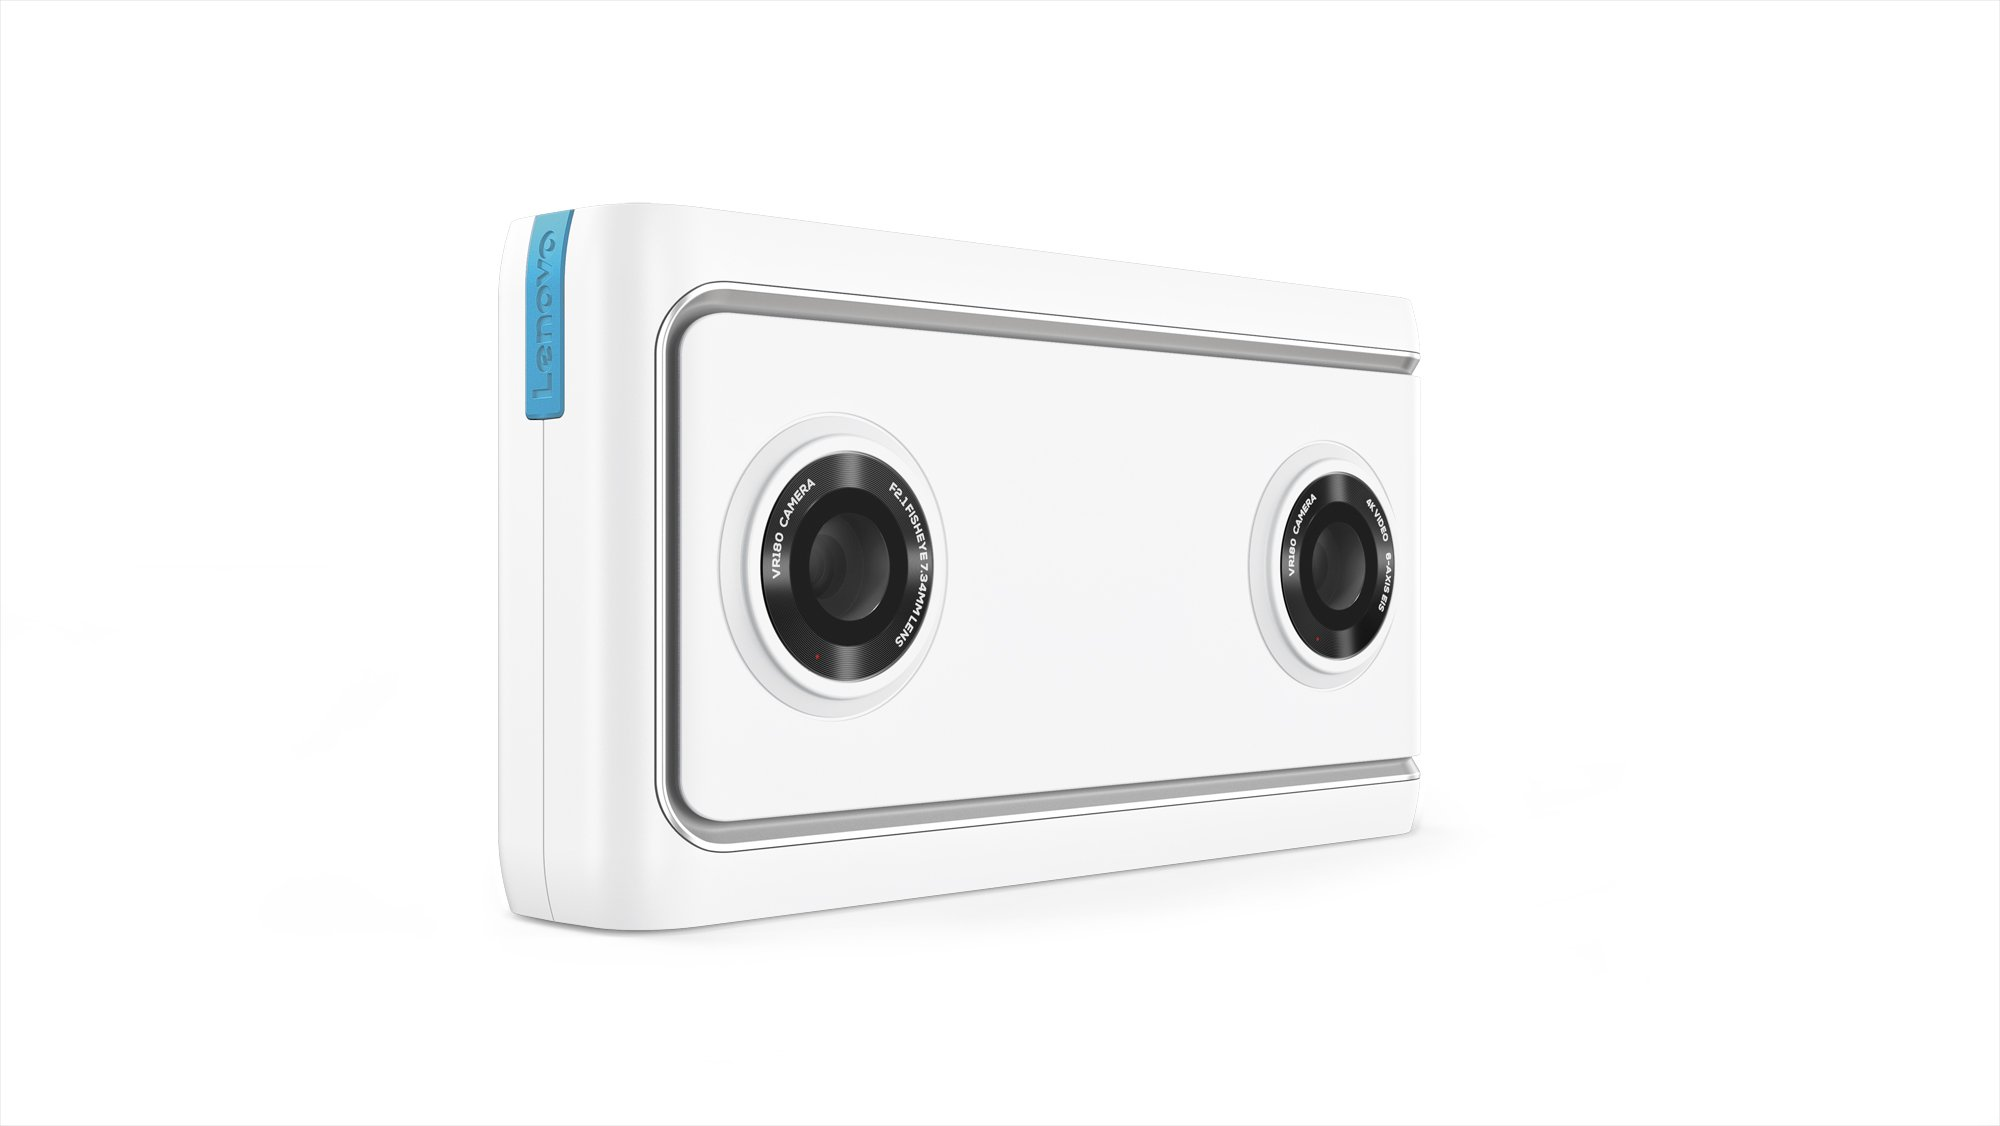 Lenovo Mirage Camera with Daydream, VR-Ready Photo and Video Camera, Integration with YouTube and Google Photos, Smartphone Compatibility, Moonlight White by Lenovo